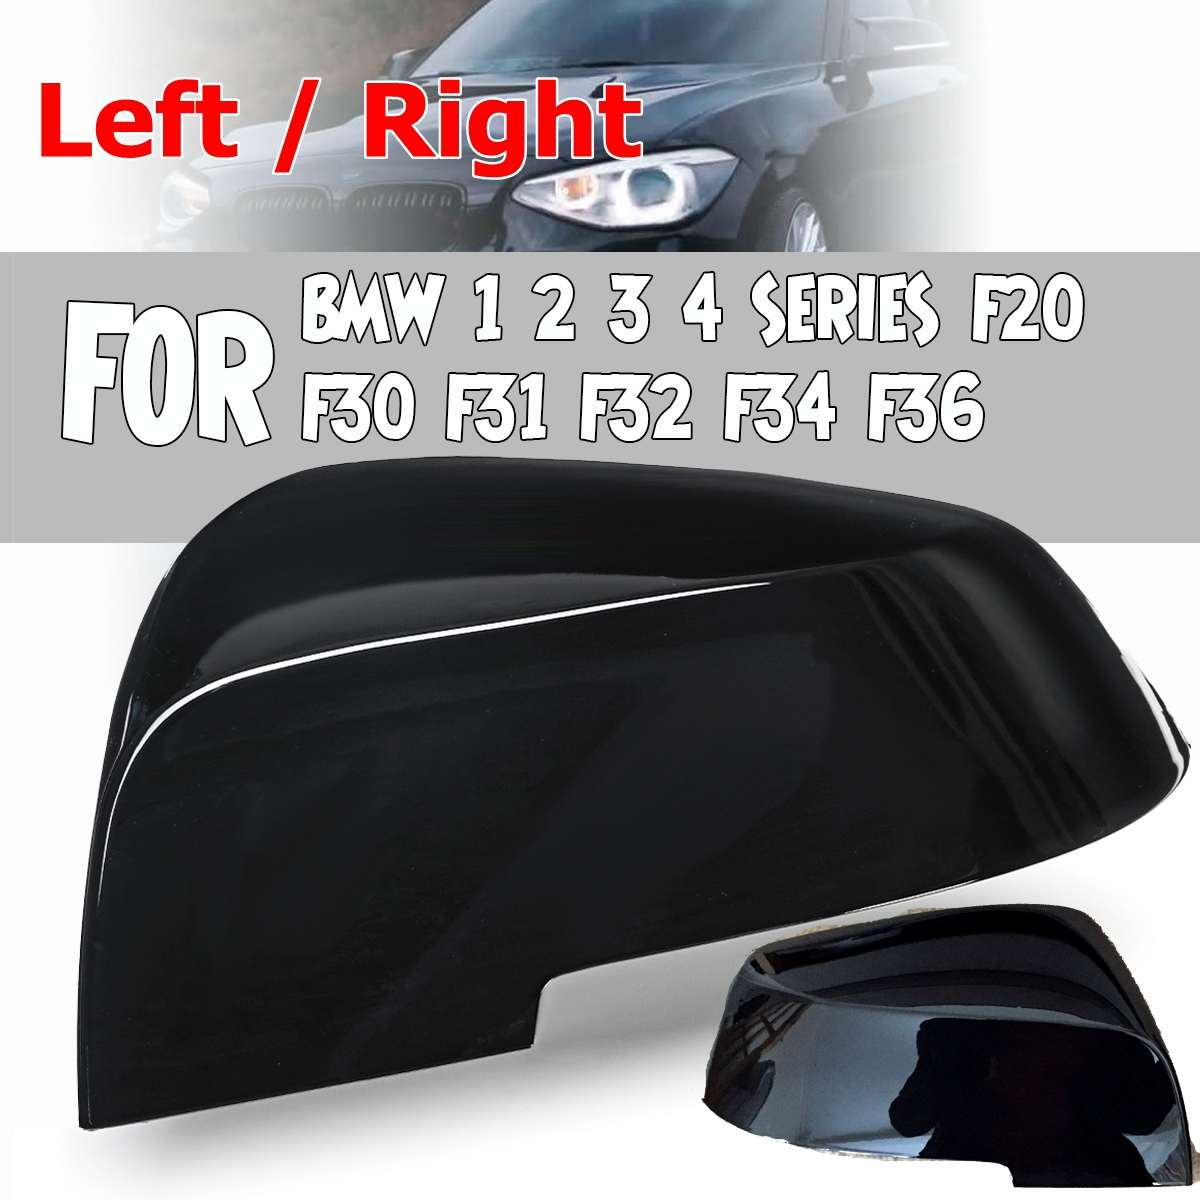 Left Outside View Door Wing Mirror Glass fit BMW 1 2 3 4 X1 Series F30 F35 F36